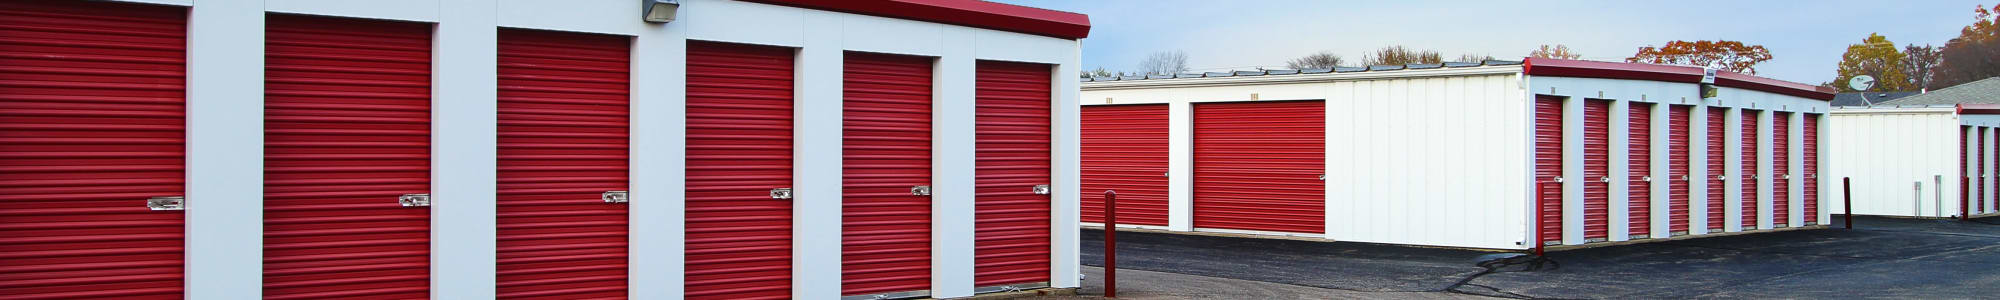 Self storage units for rent in Springfield, MI